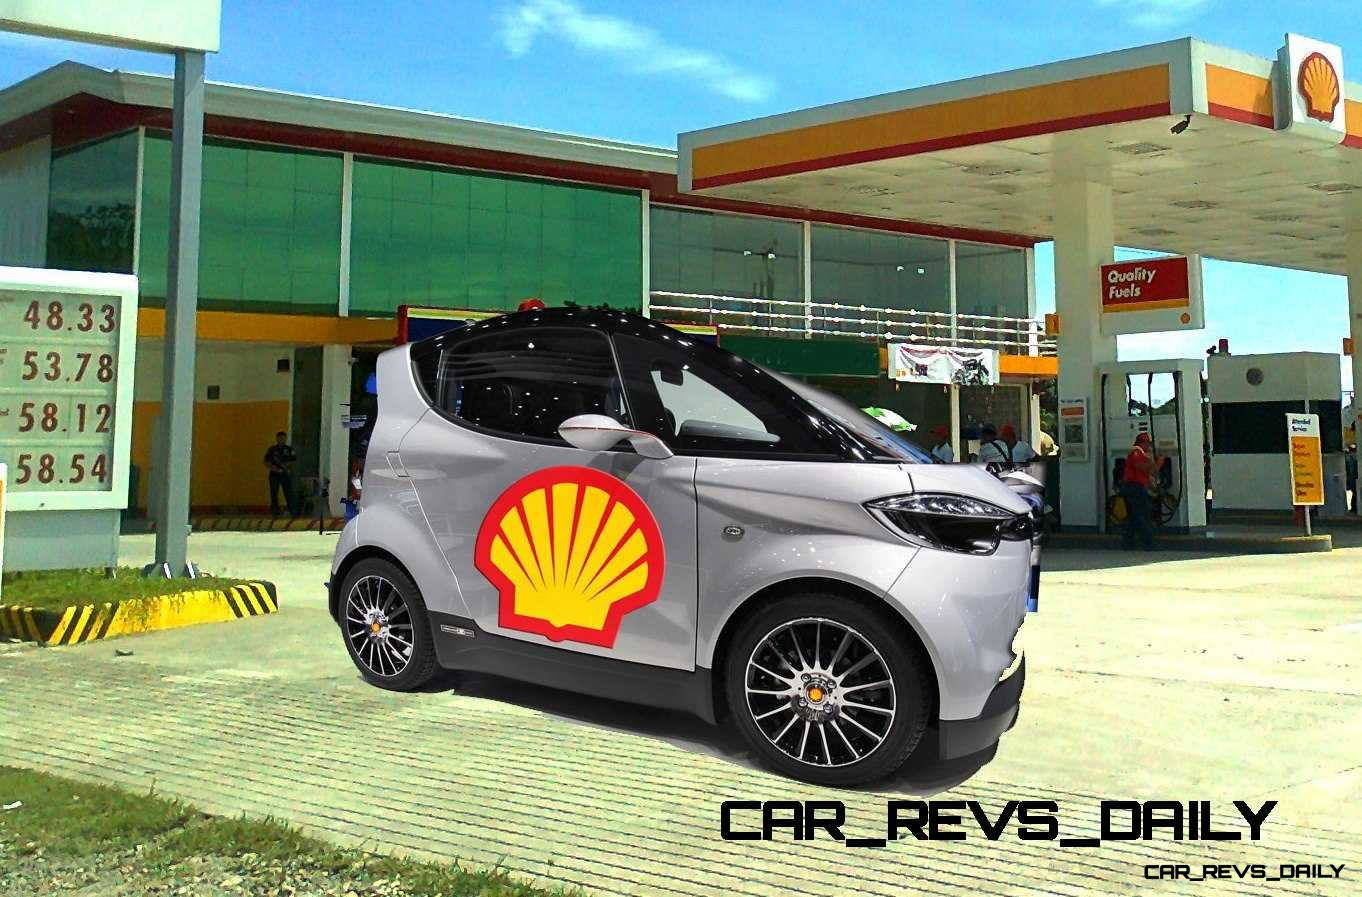 Shell_gas_station_of_divisoria_zamboanga_citysfd